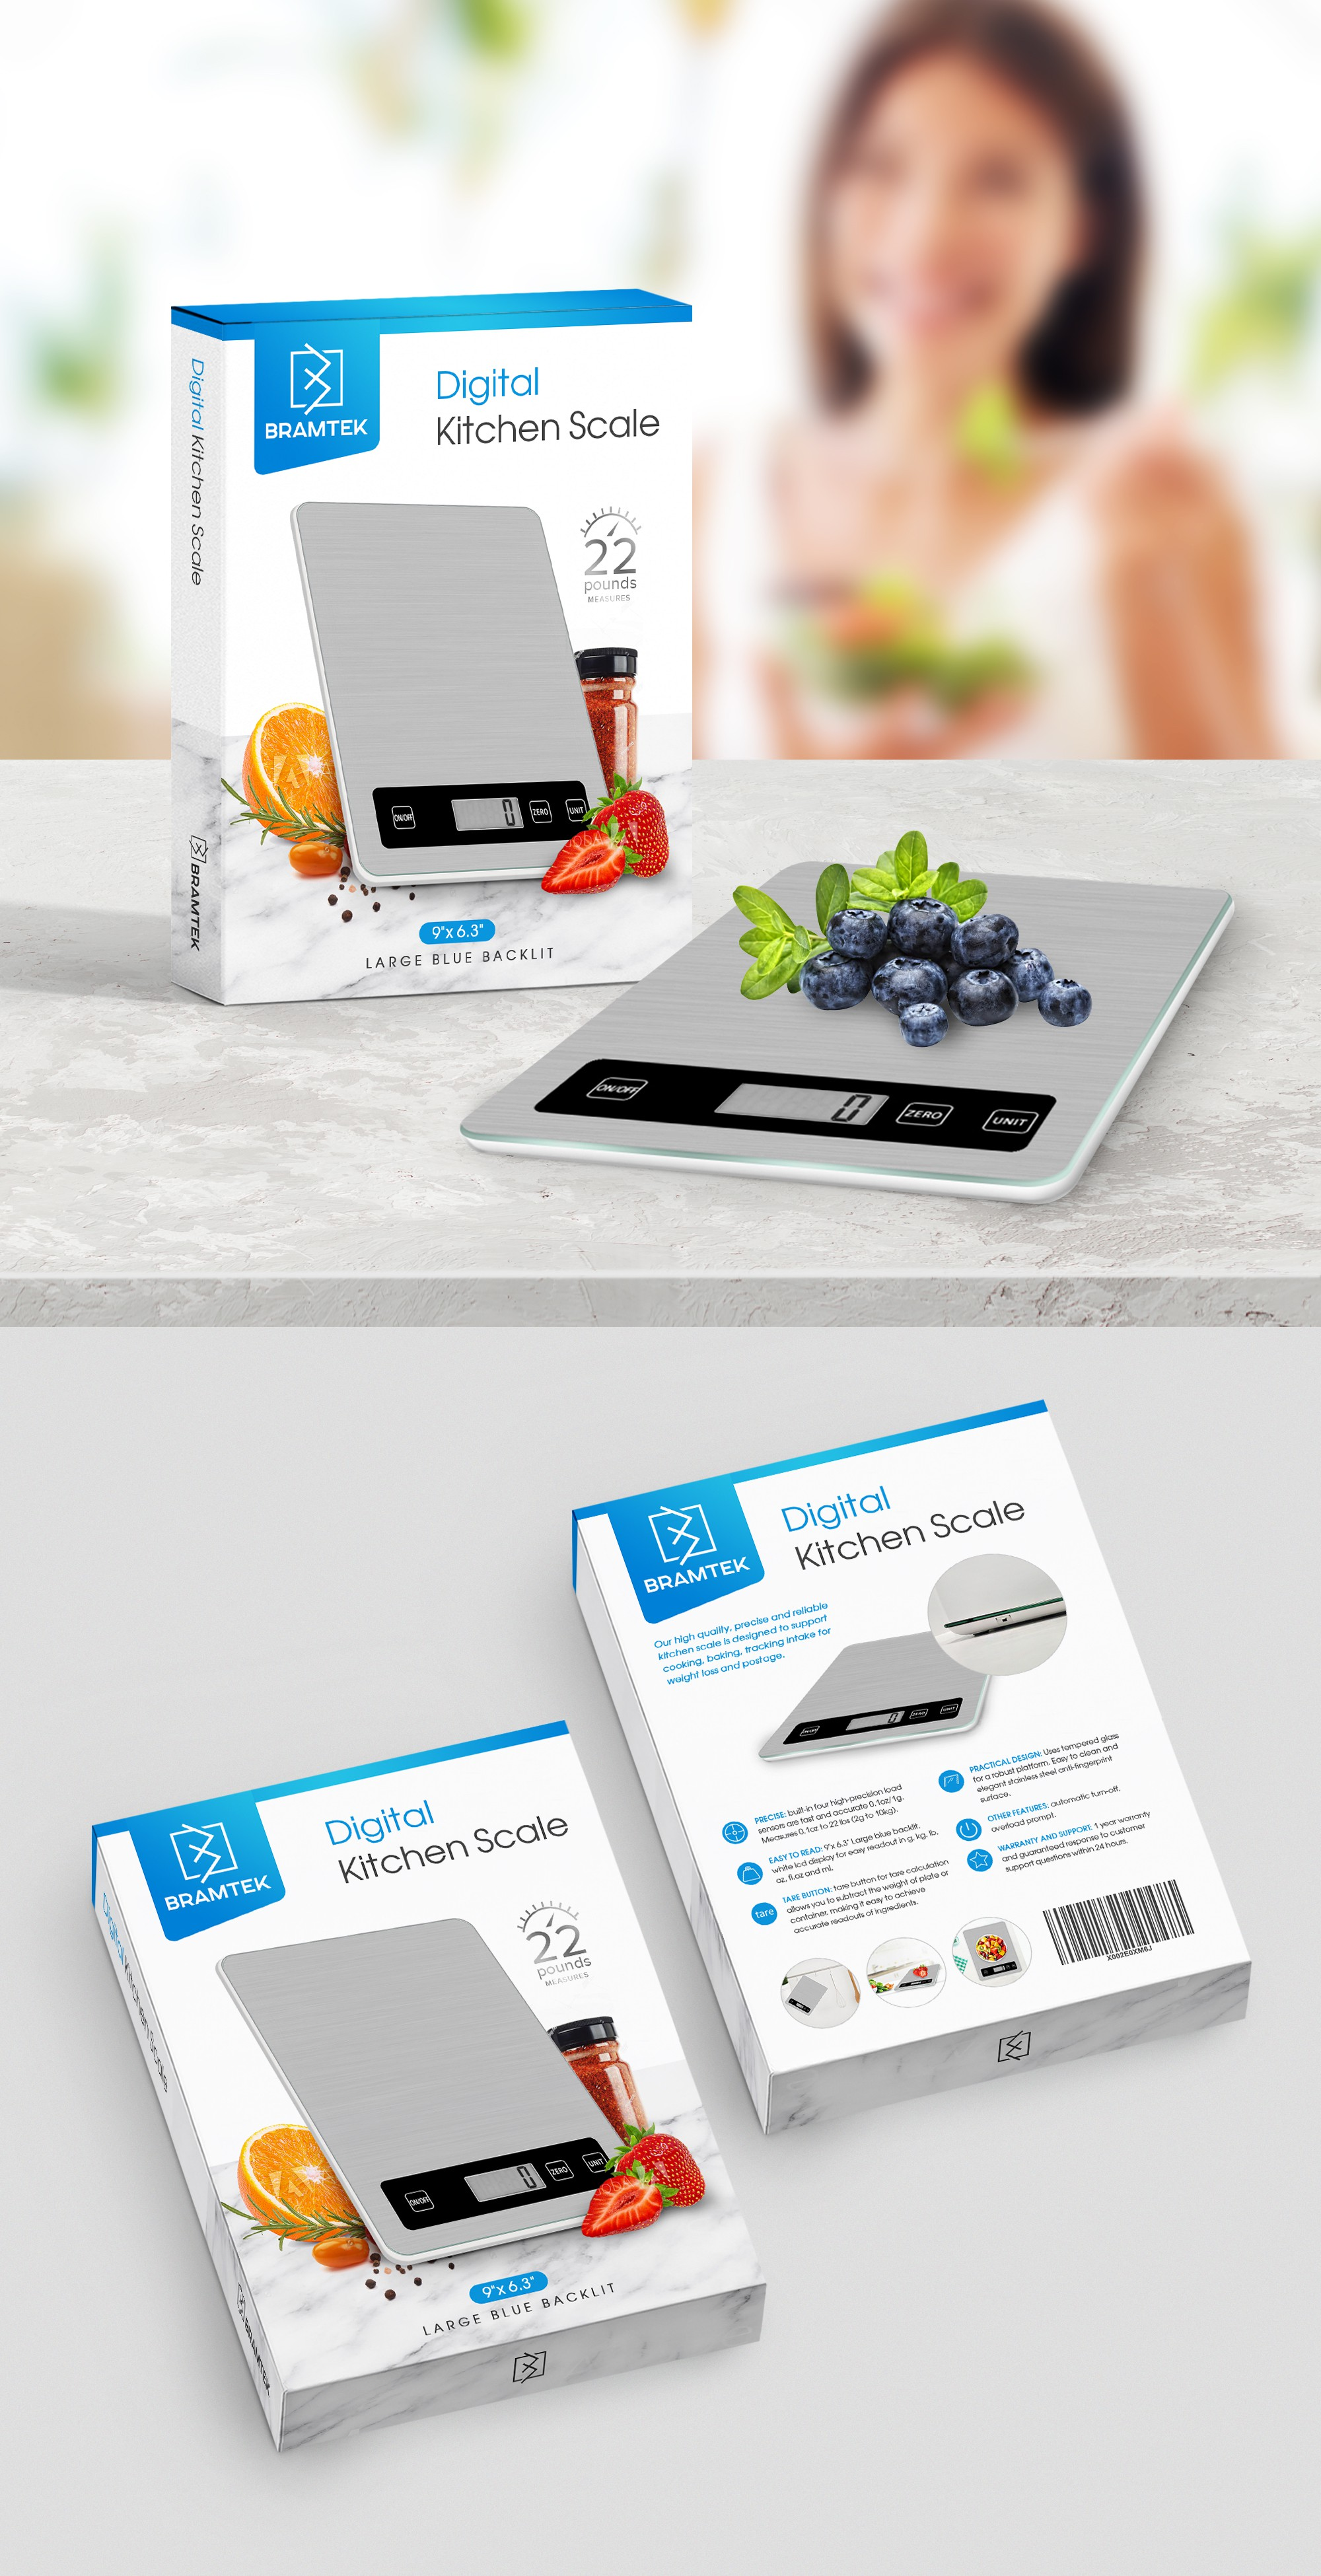 Design Packaging for a High Quality Digital Kitchen Scale